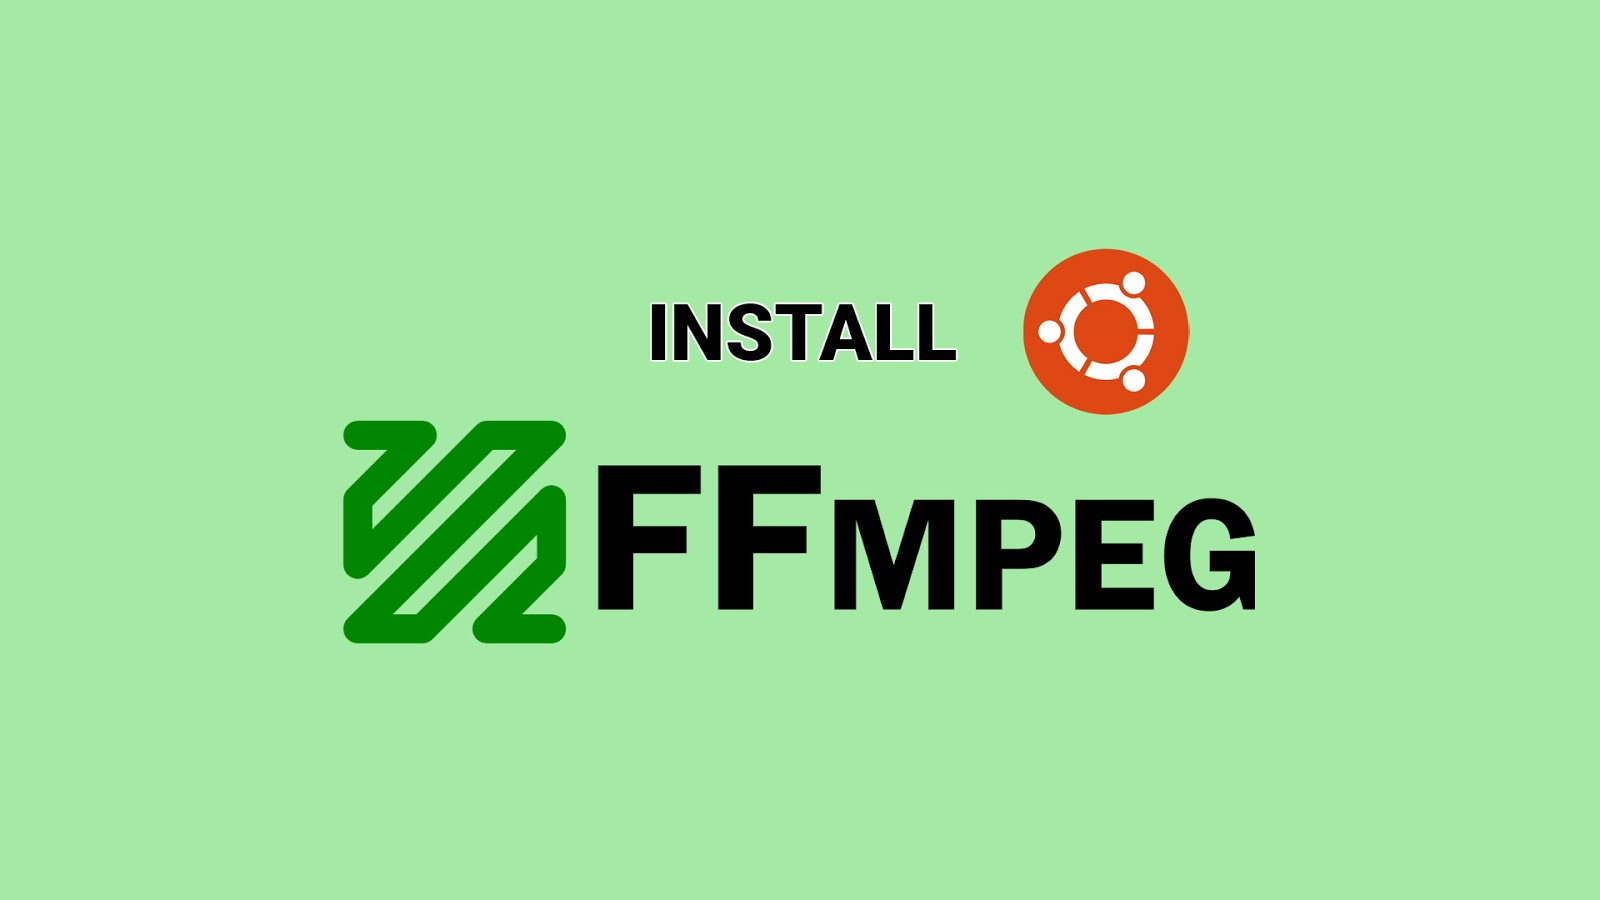 FFmpeg 4 1 2 Release, Install on Ubuntu / Linux Mint